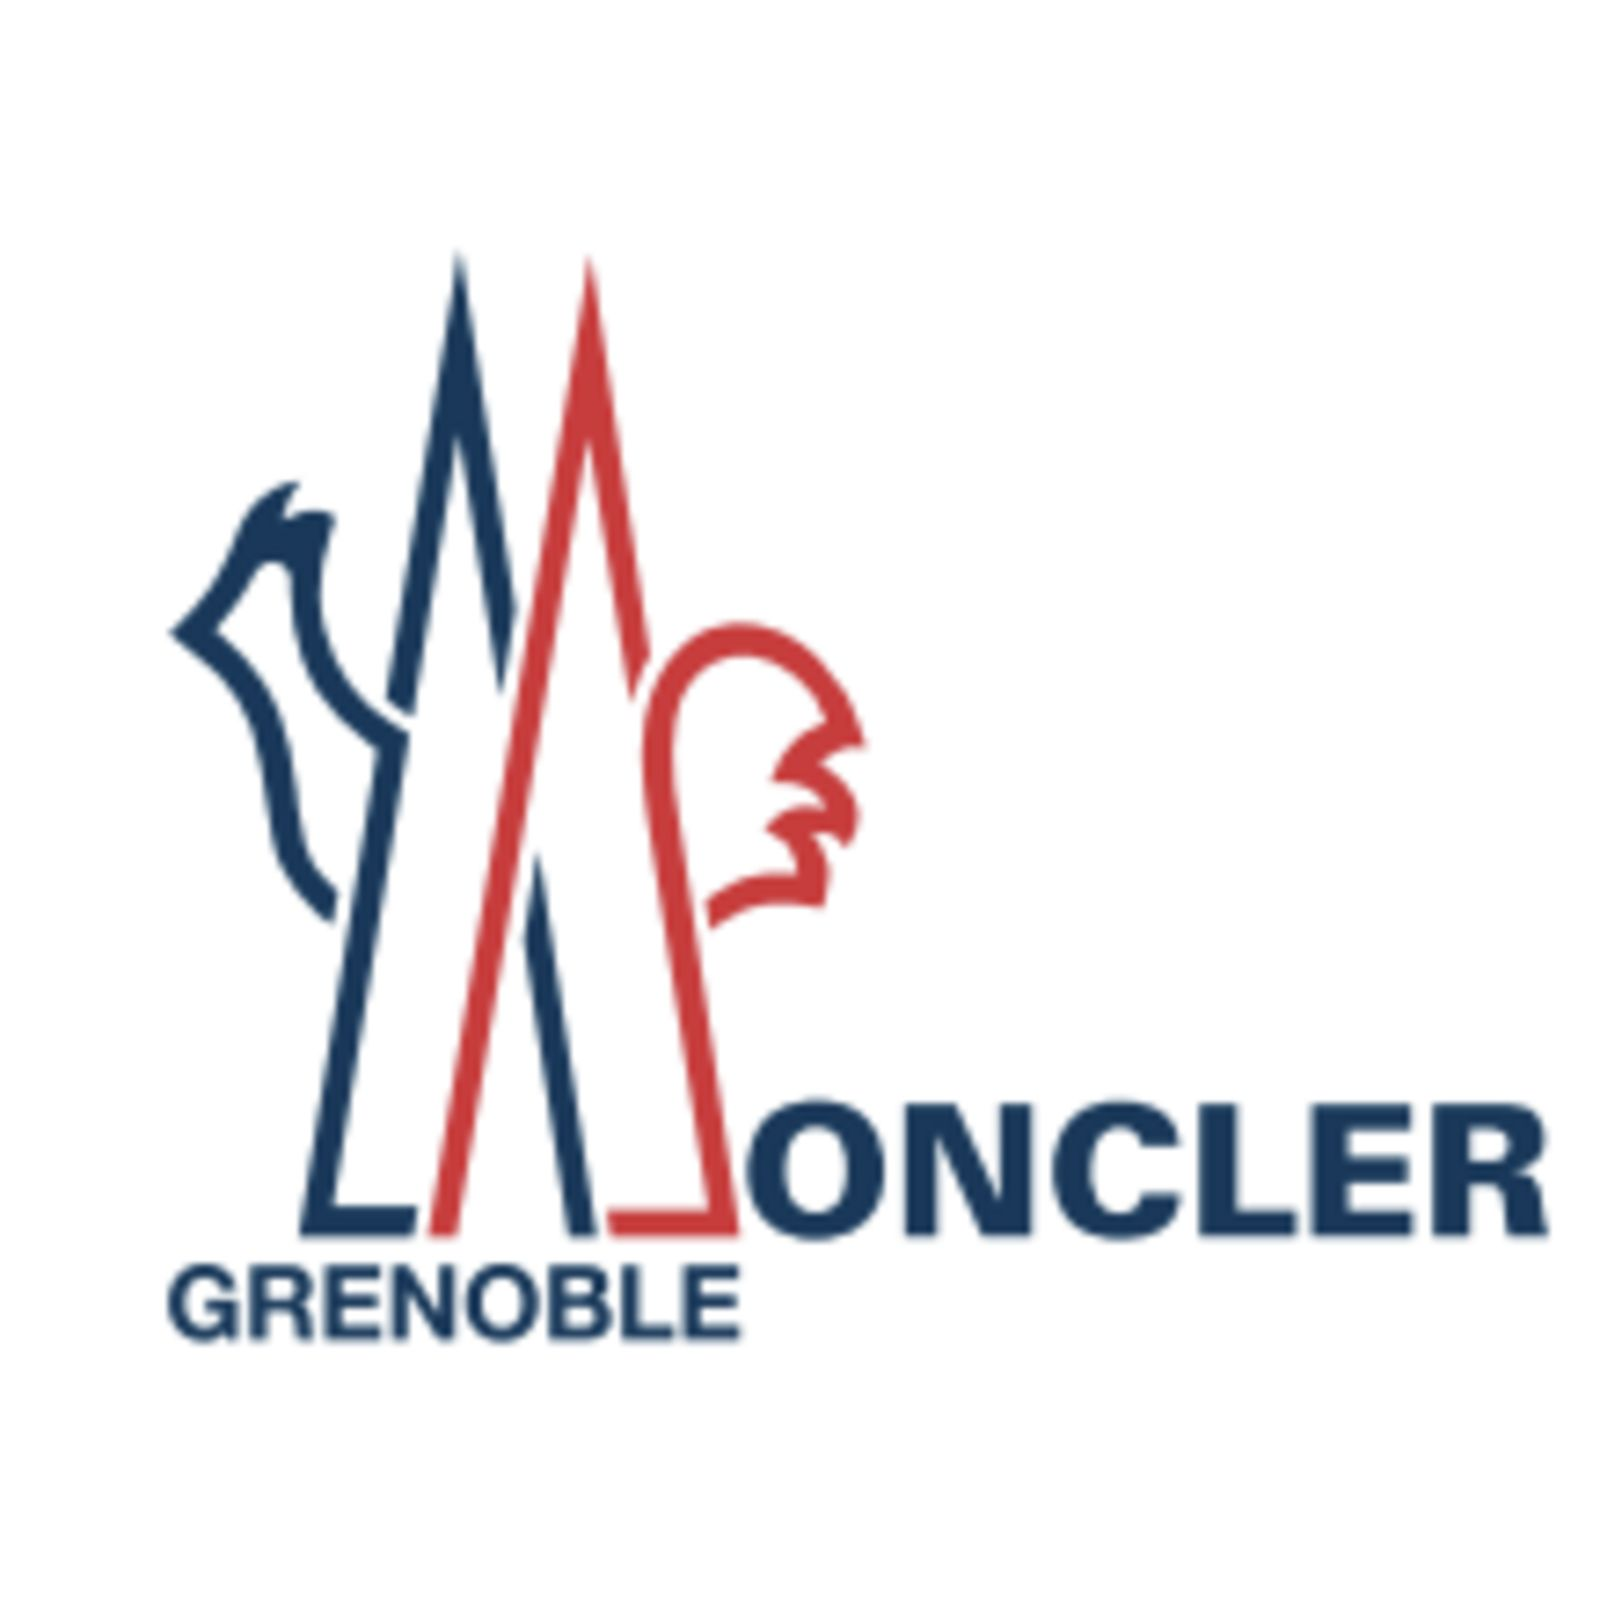 MONCLER GRENOBLE (Image 1)